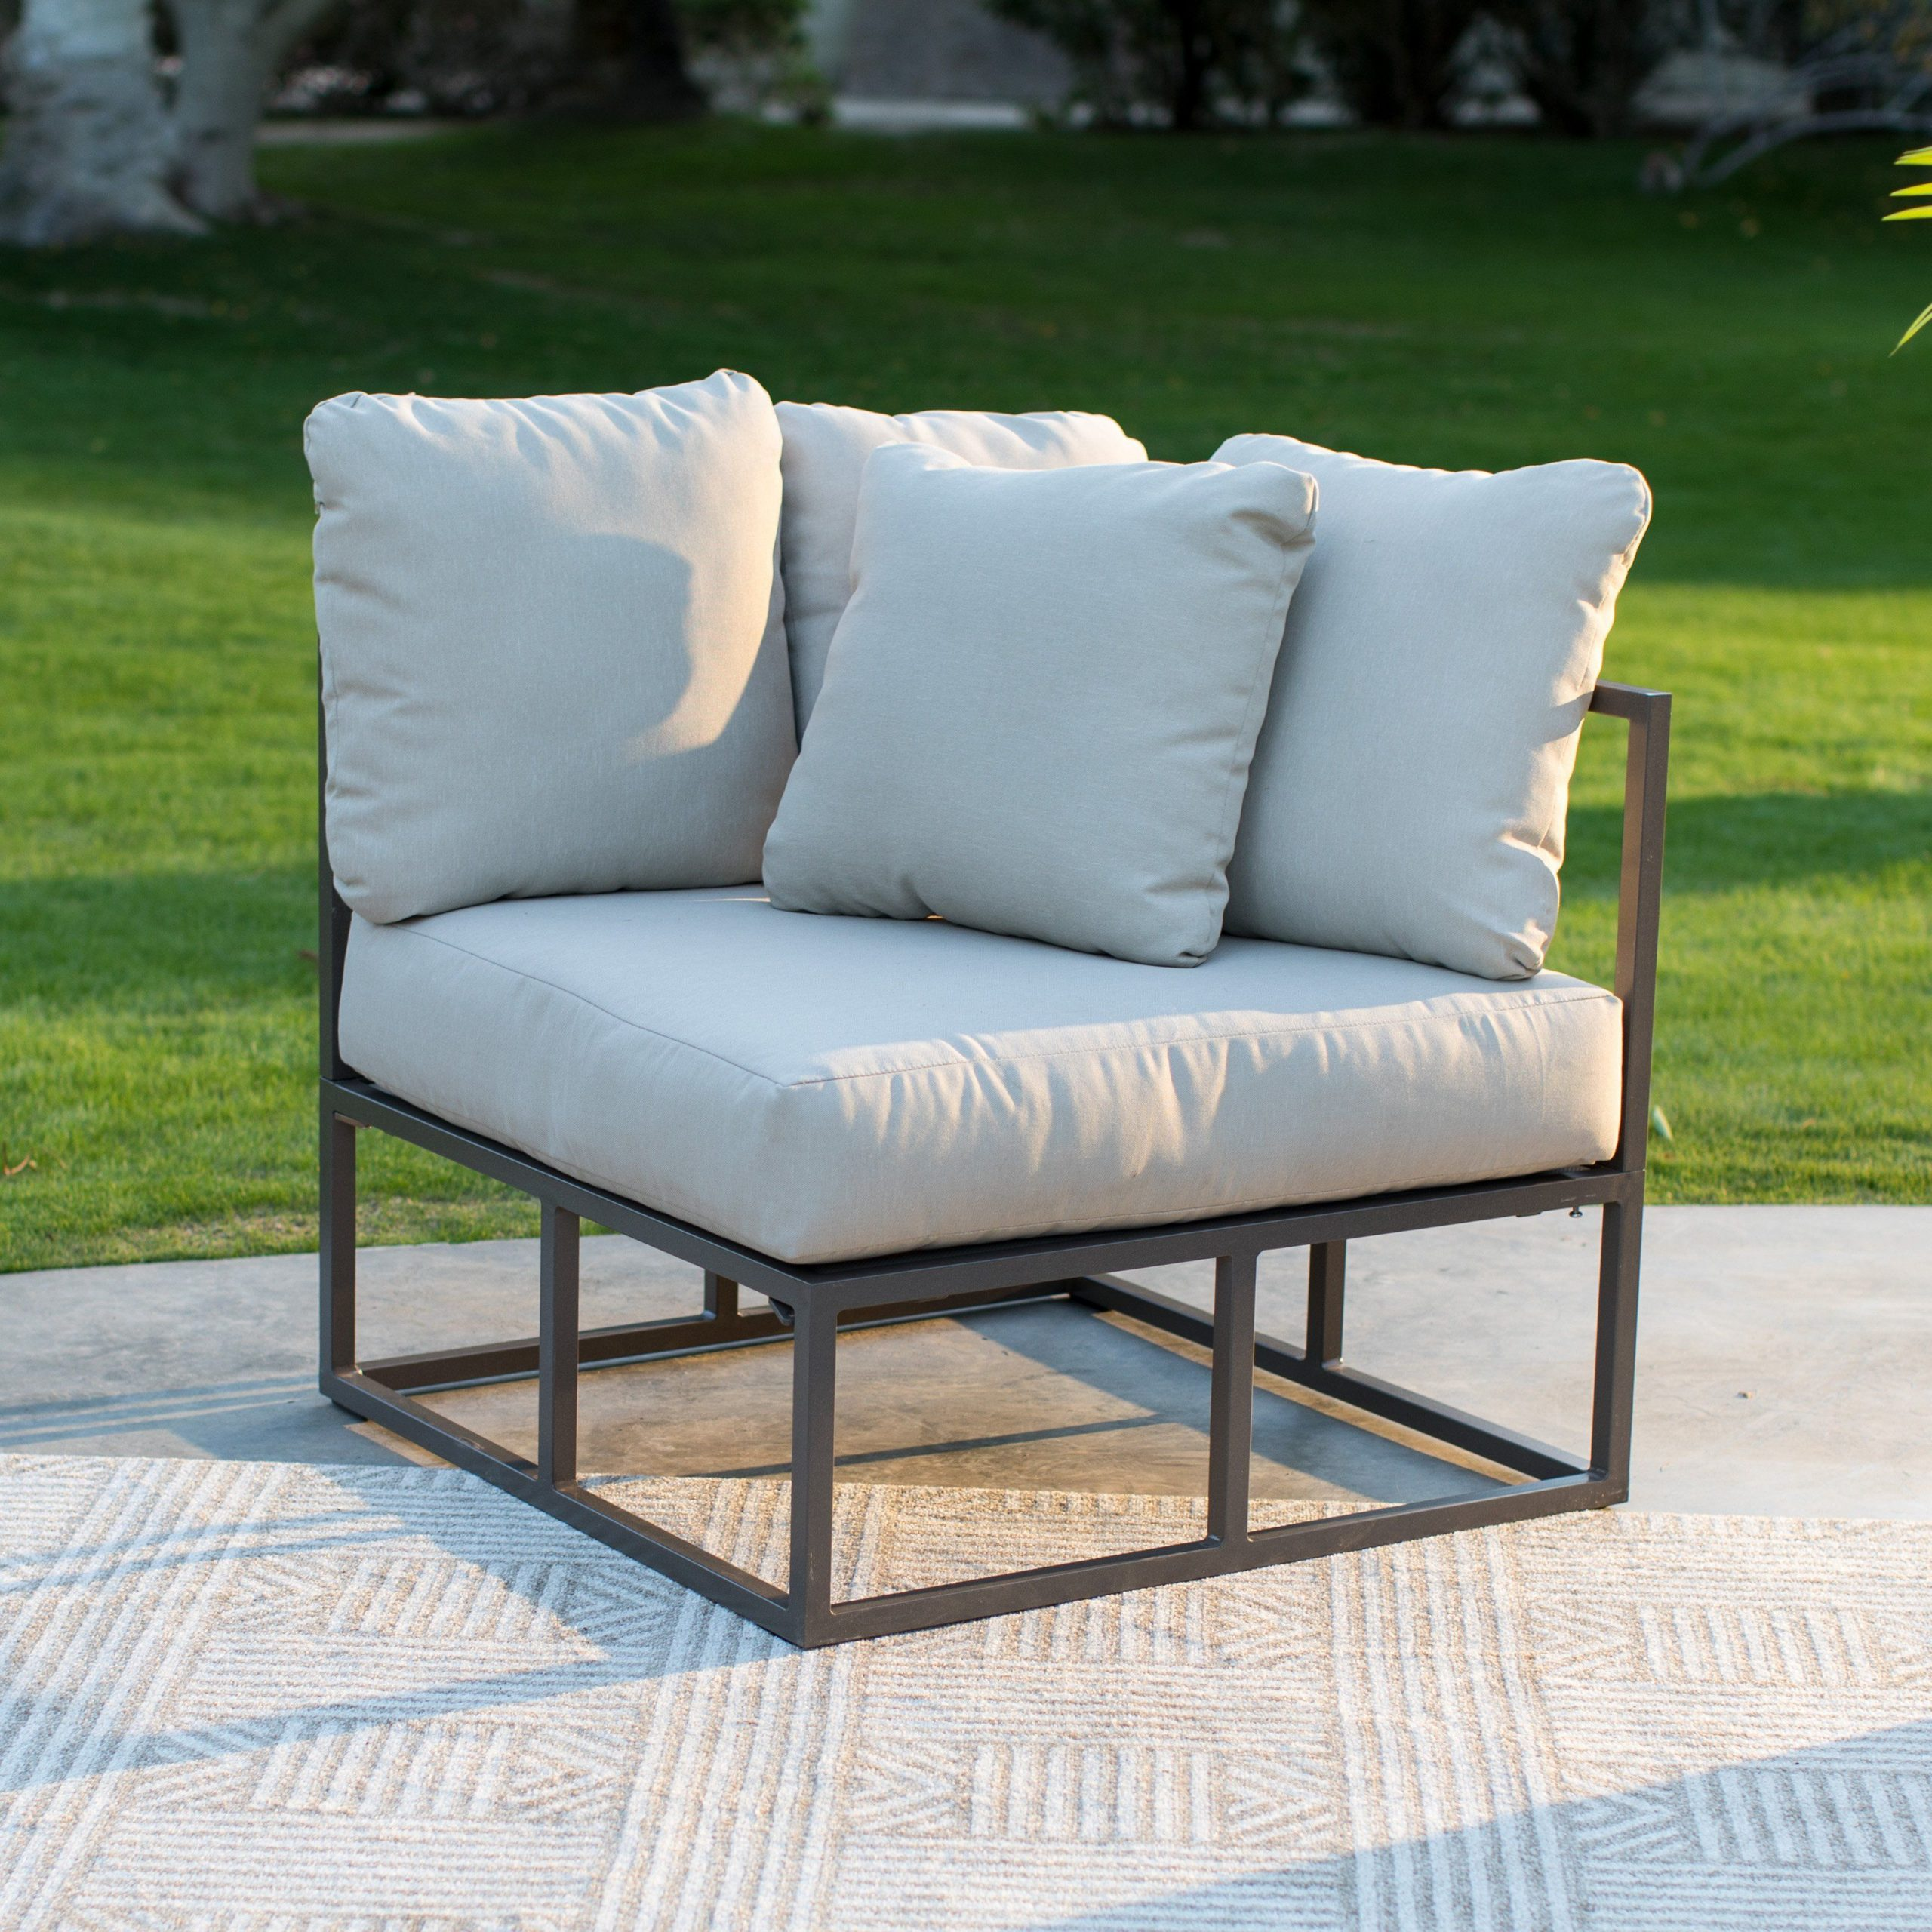 Famous Repp Patio Sofas With Cushion Regarding Belham Living Bonaire Aluminum Outdoor Corner Sectional (View 3 of 25)